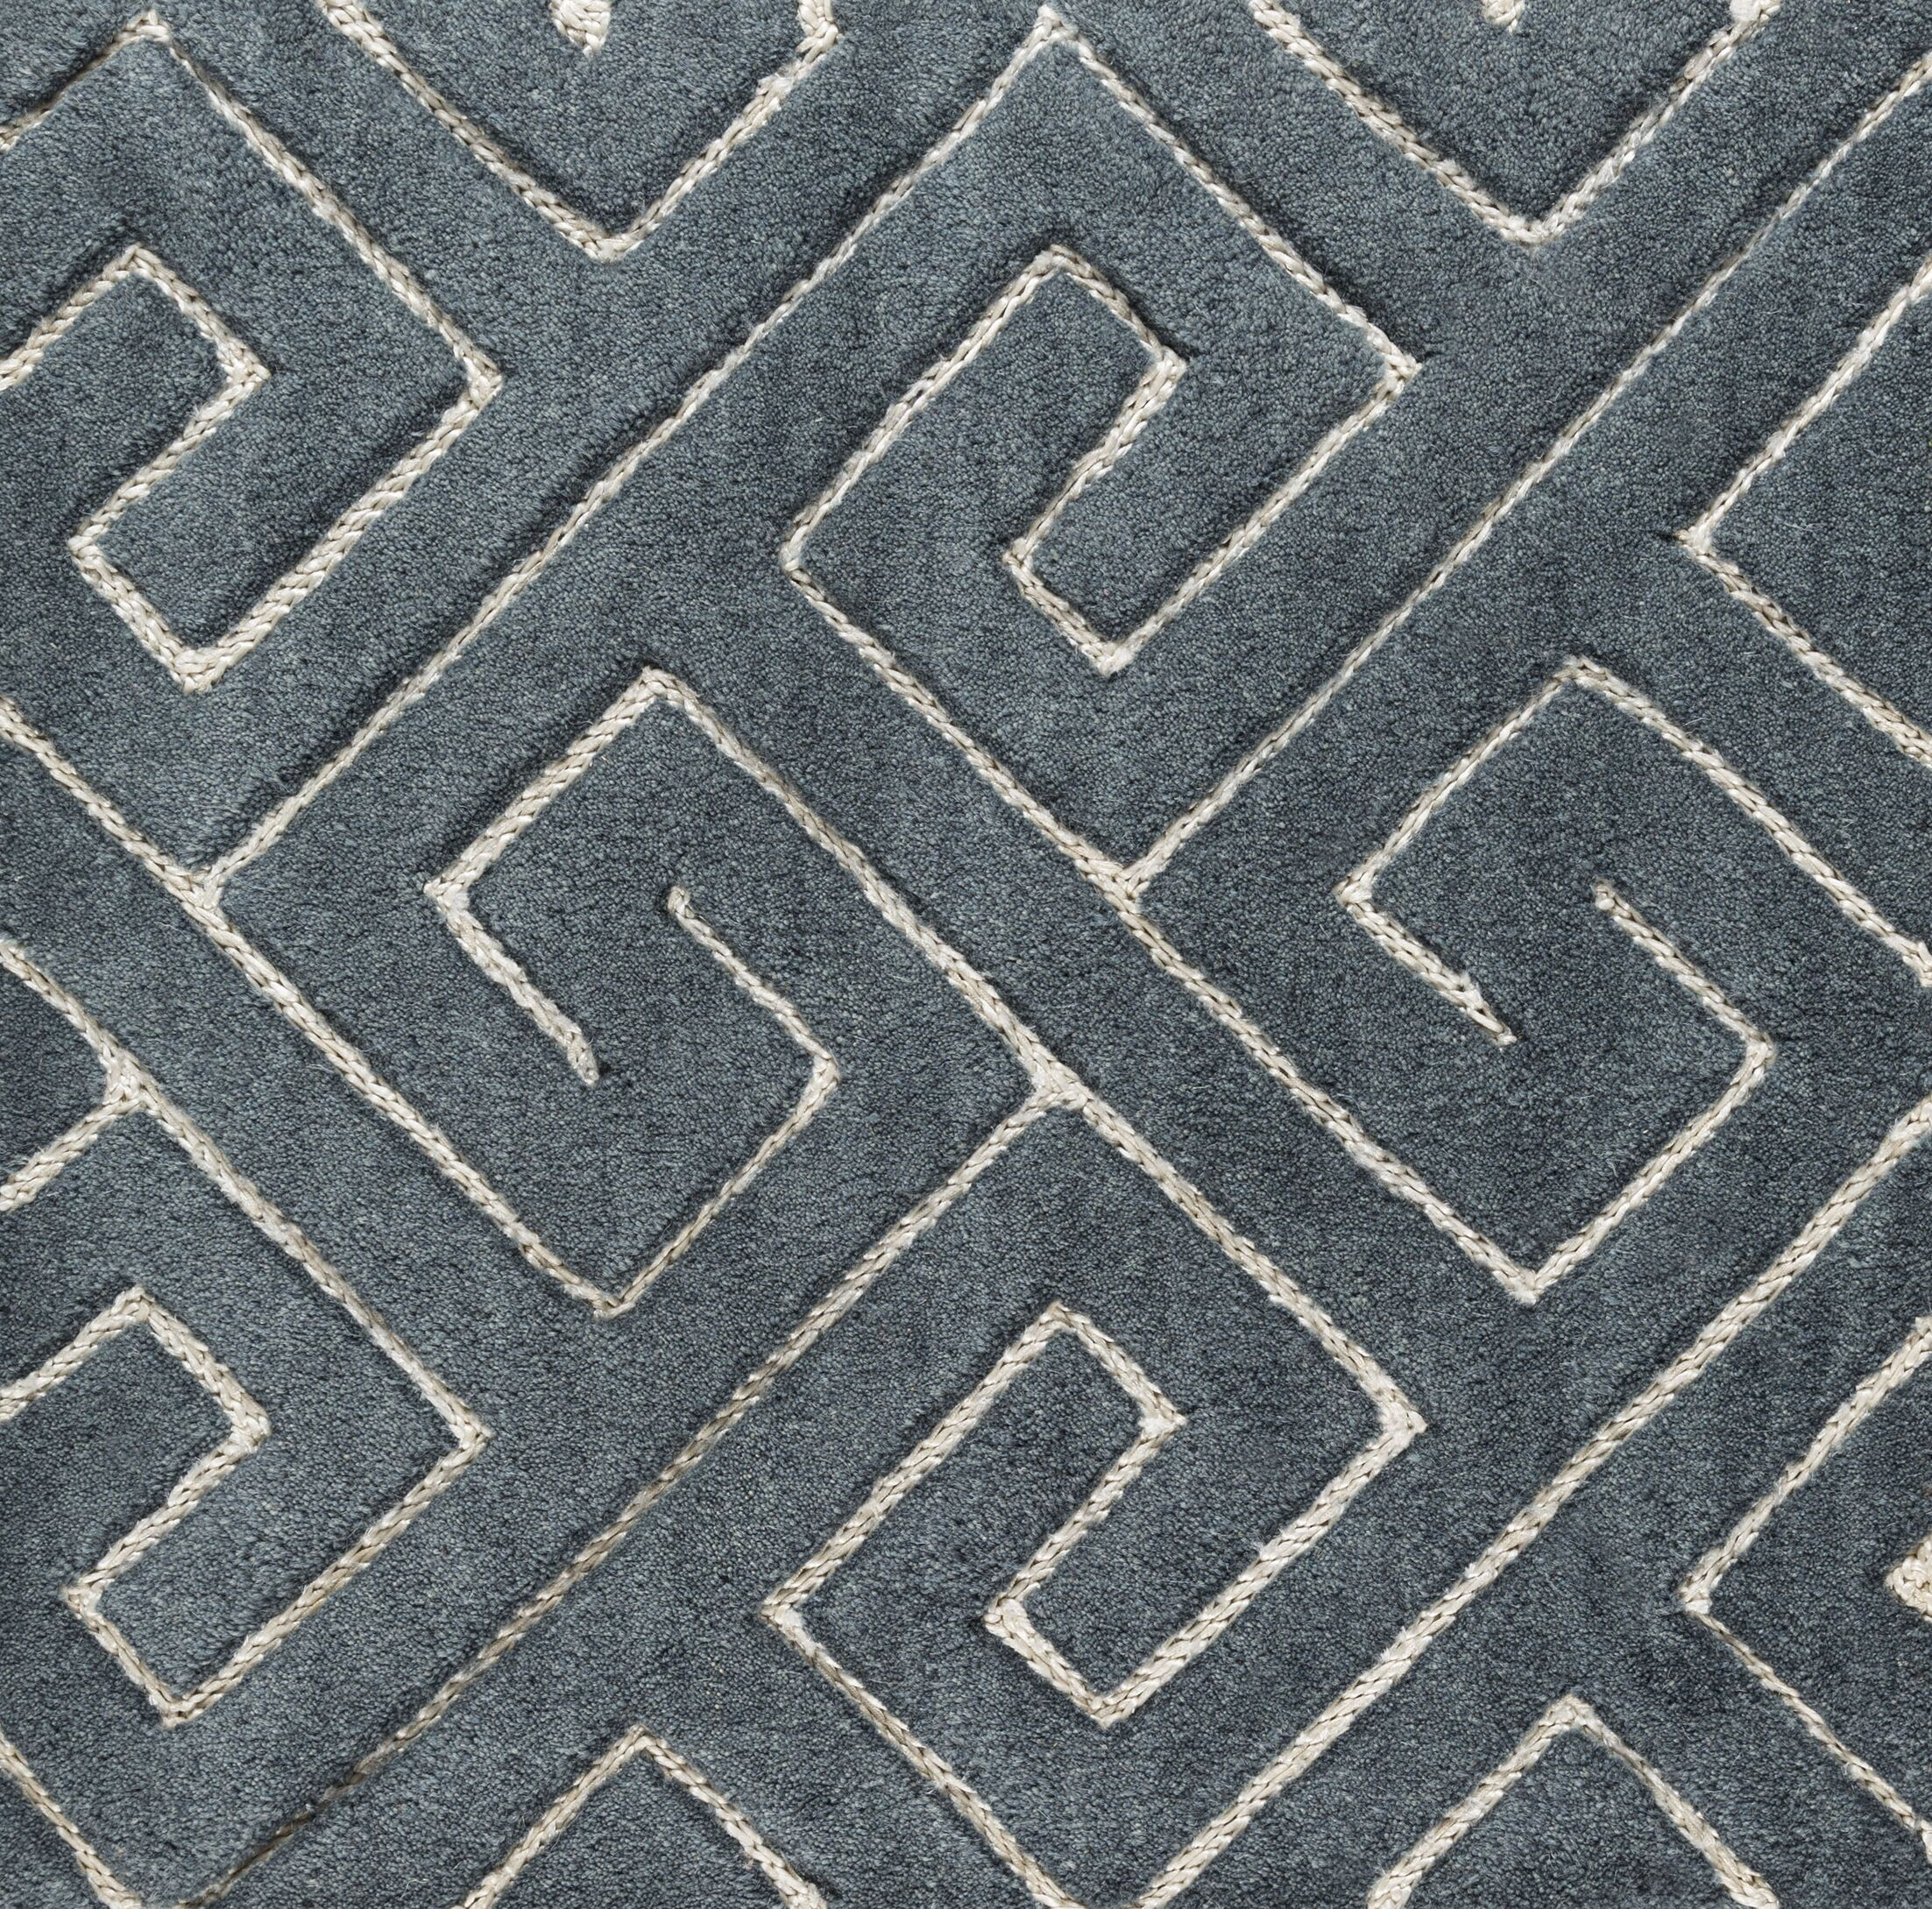 Hereford Hand-Tufted Gray Area Rug Rug Size: Rectangle 8' x 10'